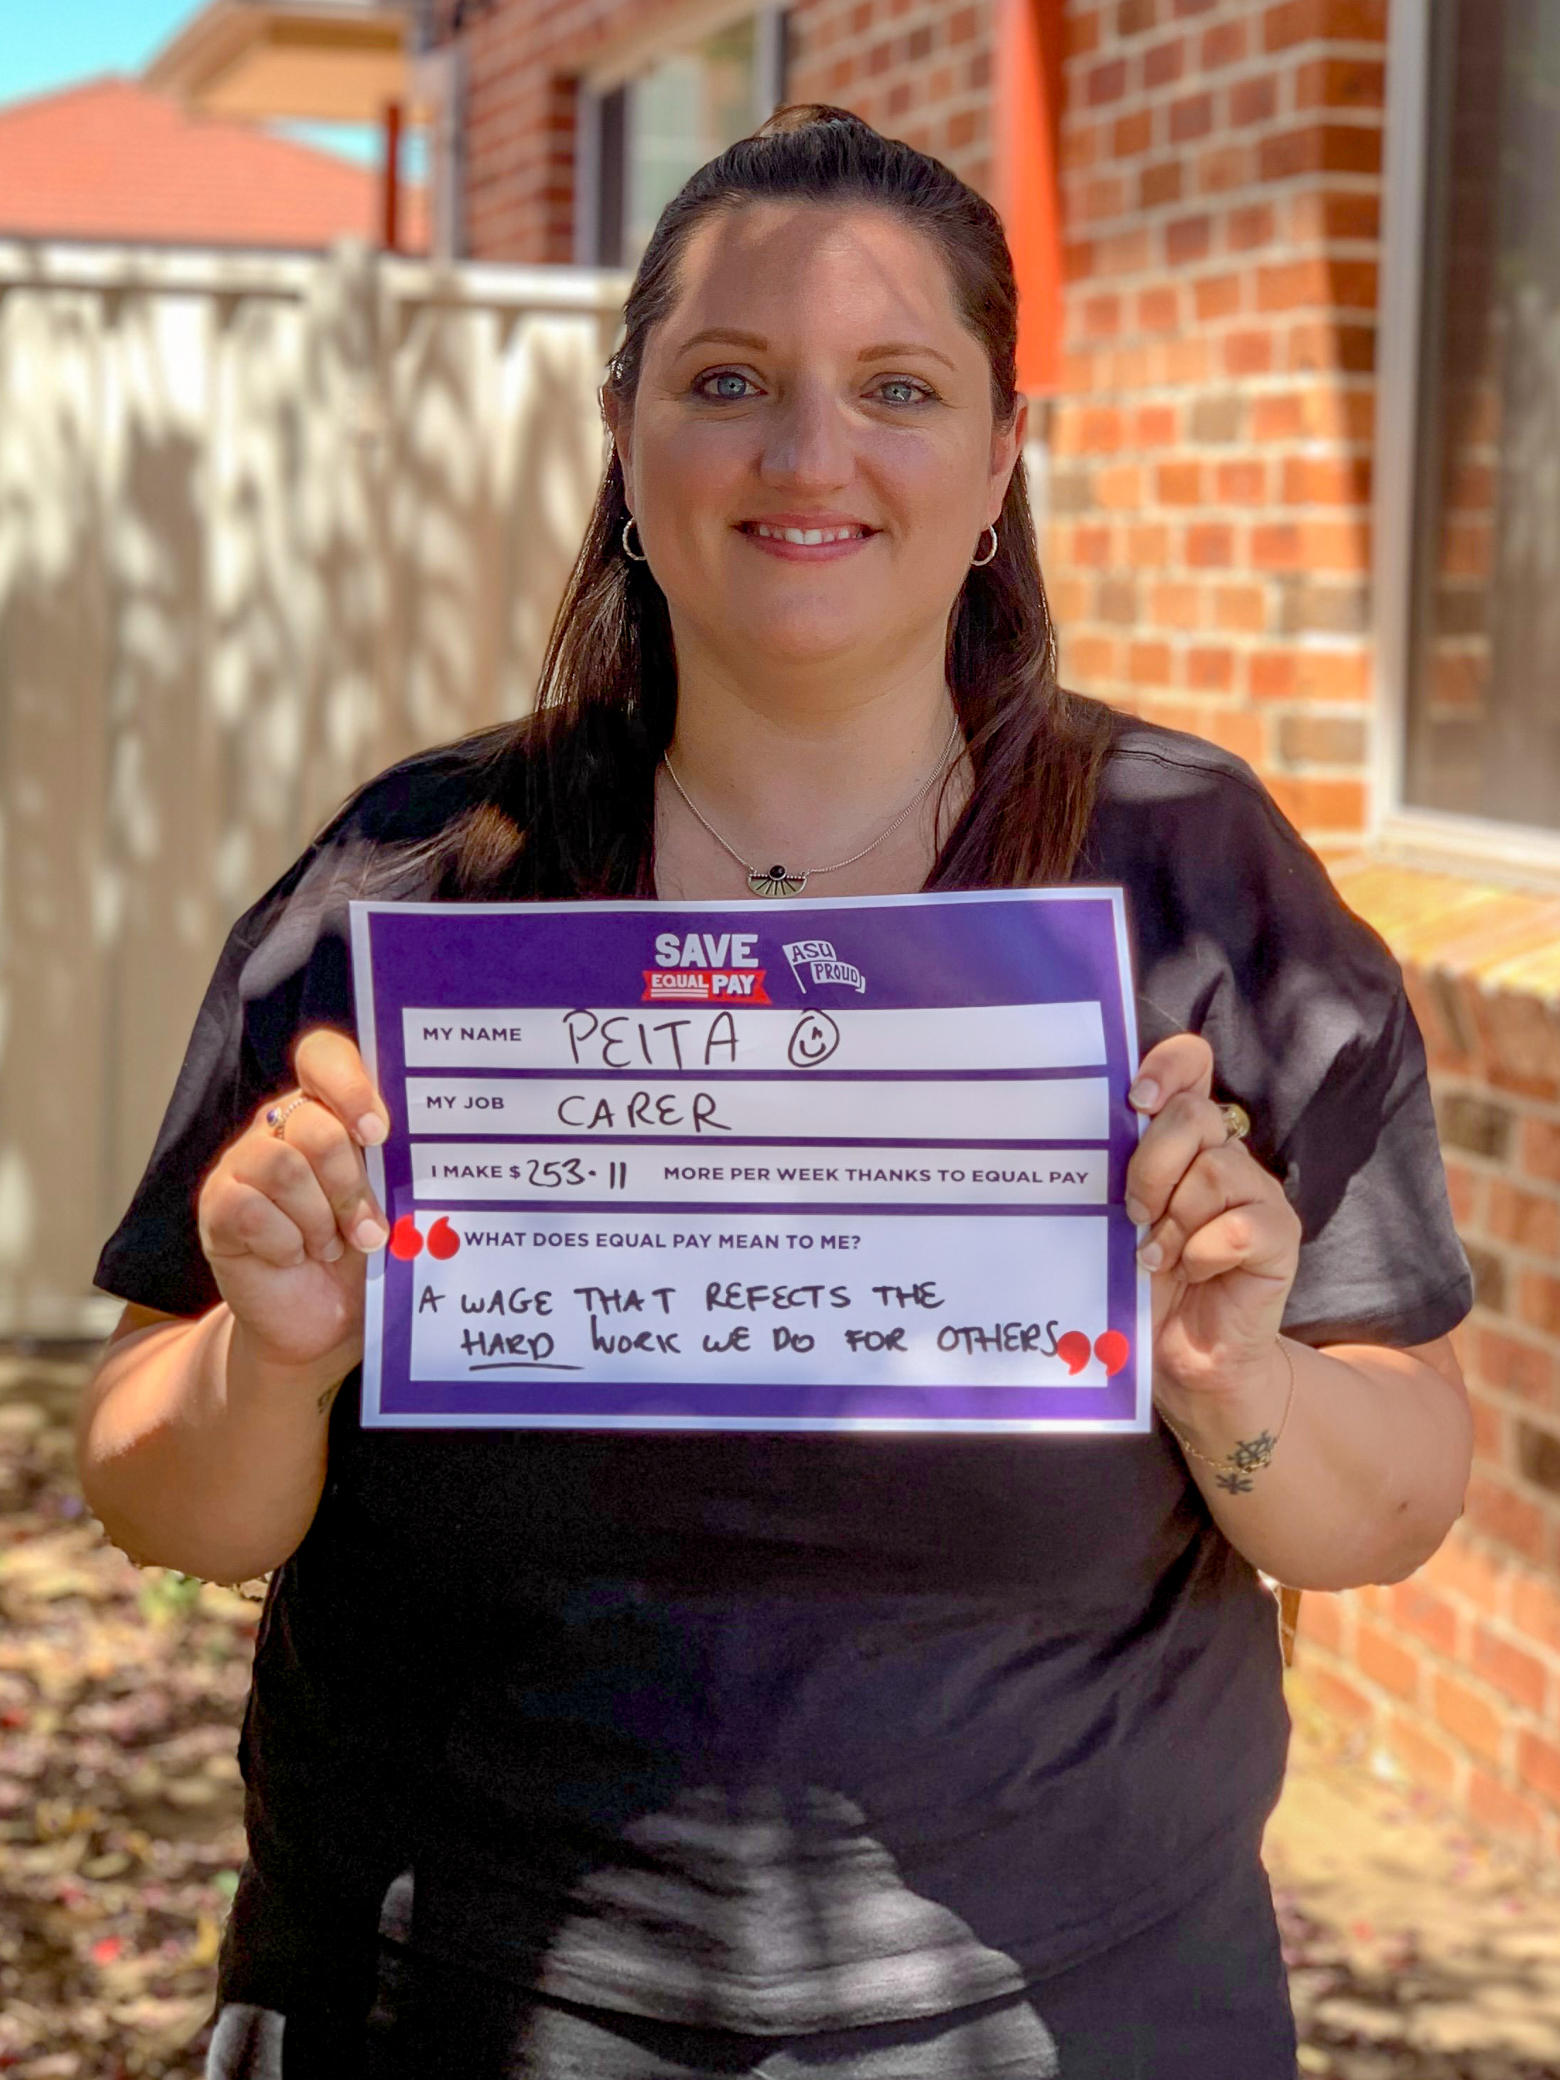 Peita holding a sign about what Equal Pay means to her